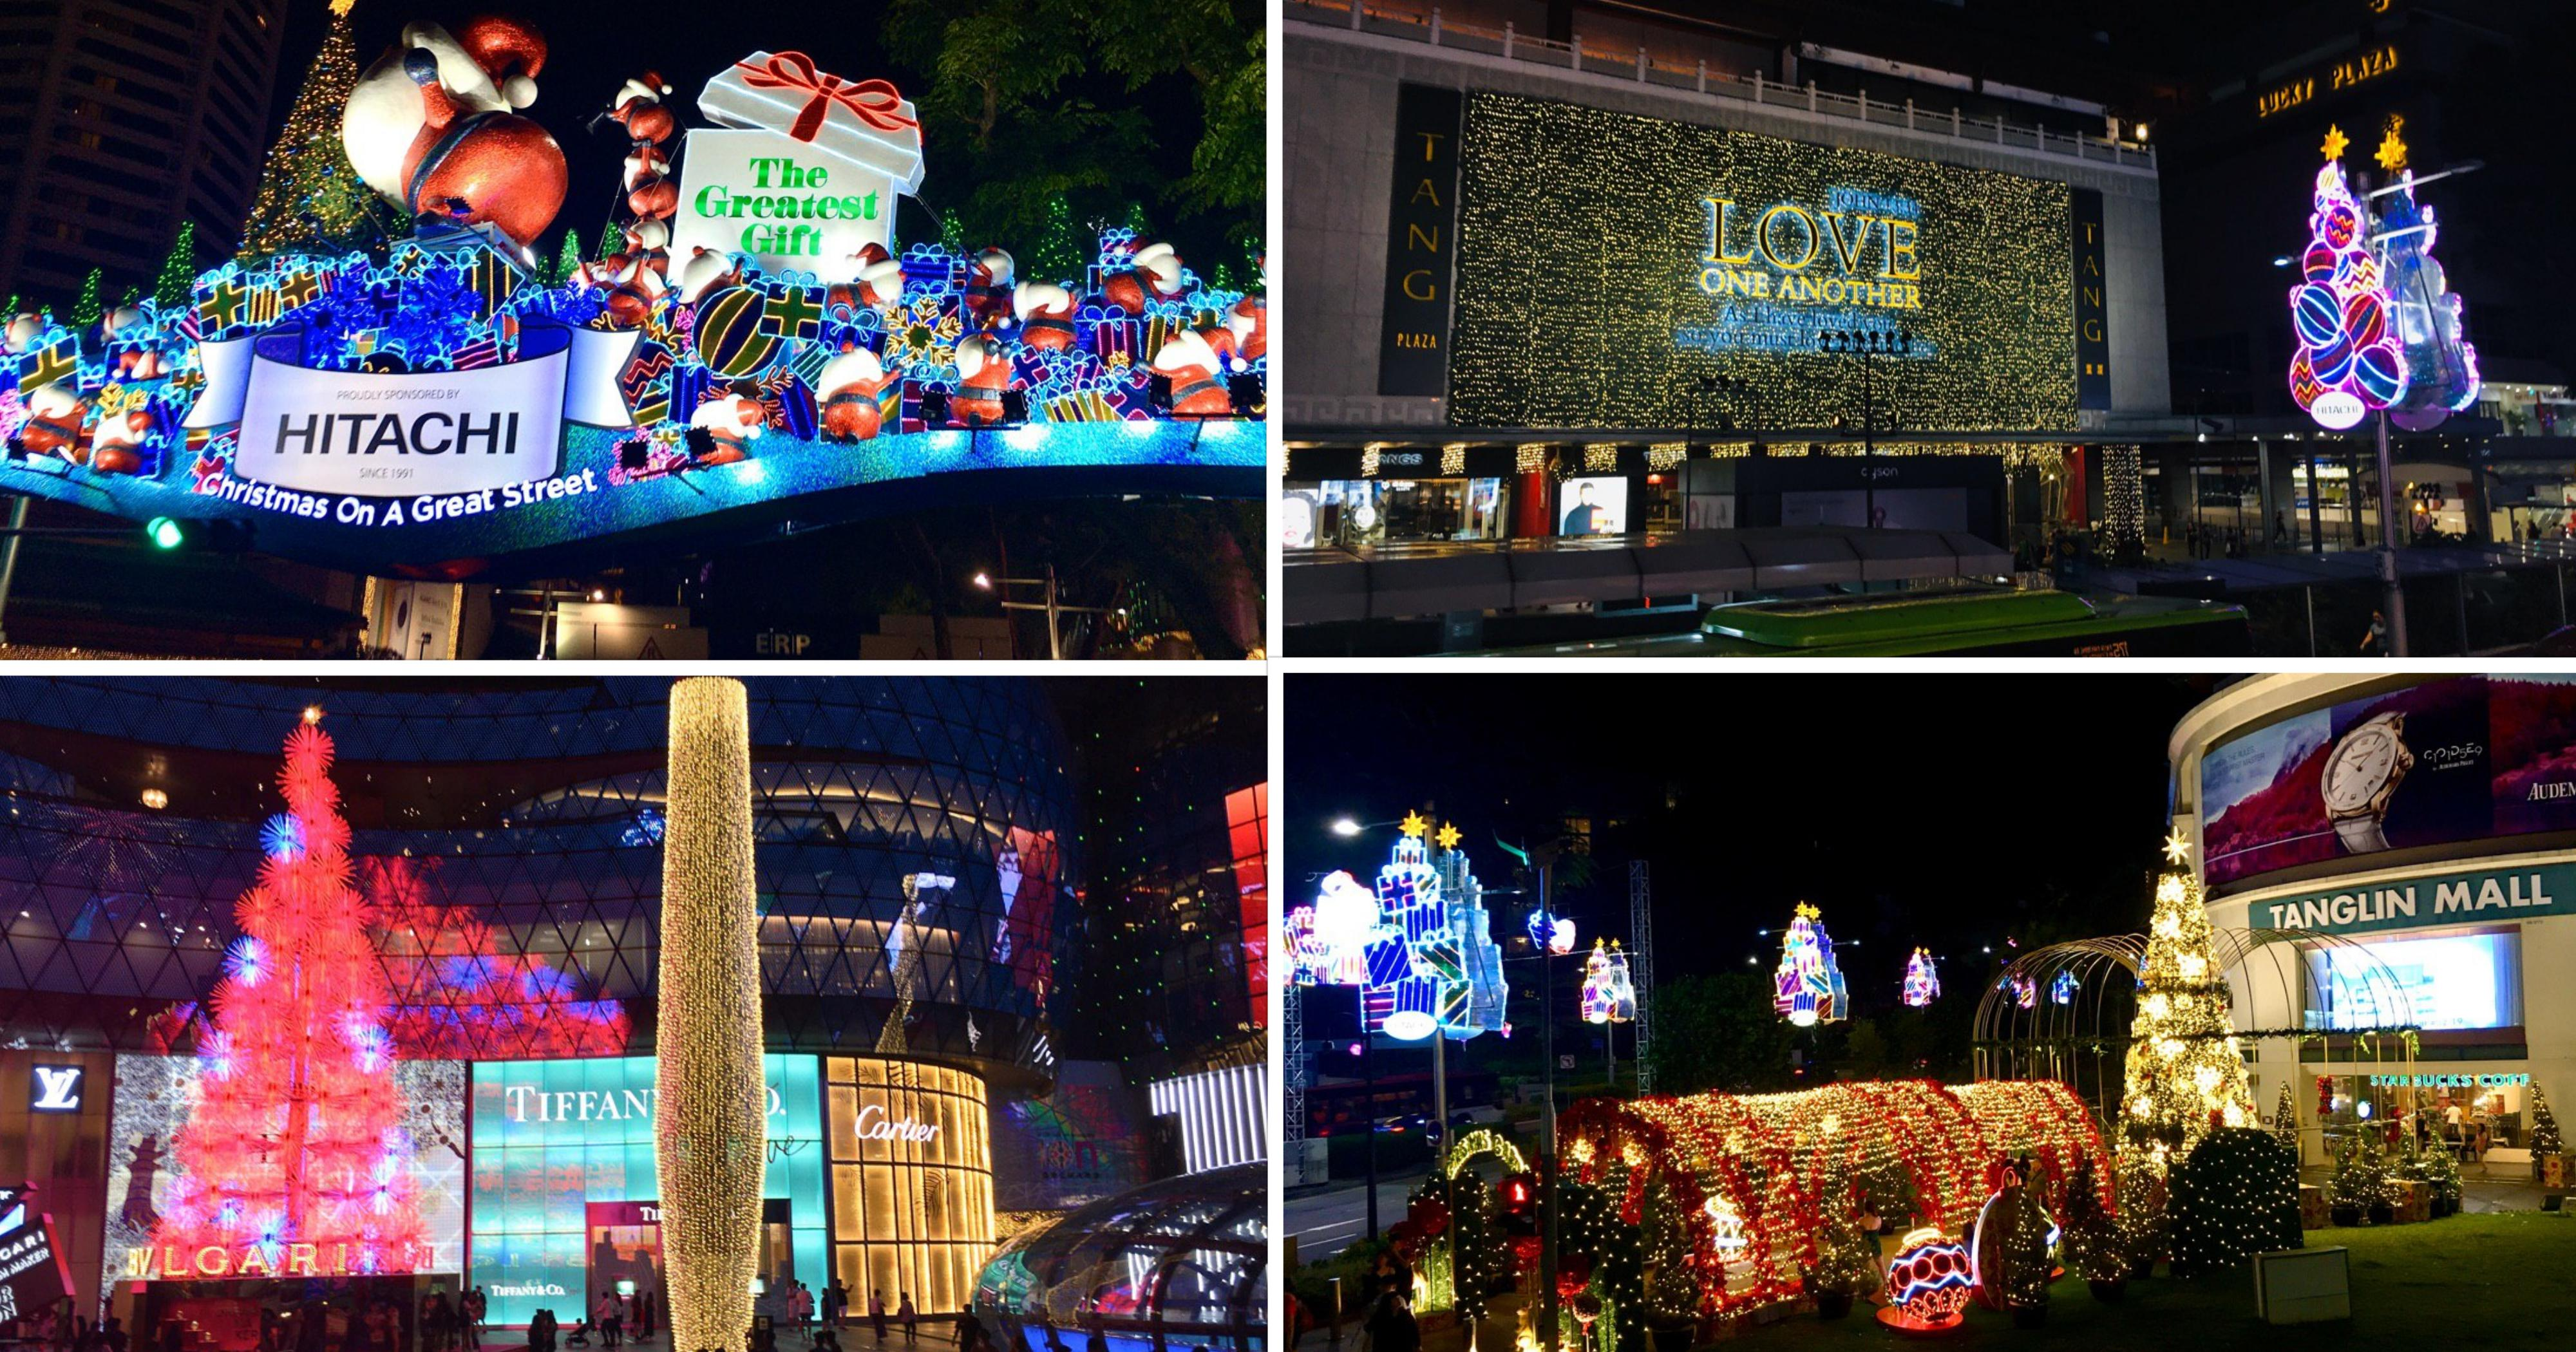 Singapore Christmas Lights 2020 First look at Orchard Road's Christmas light up from Nov. 16, 2019